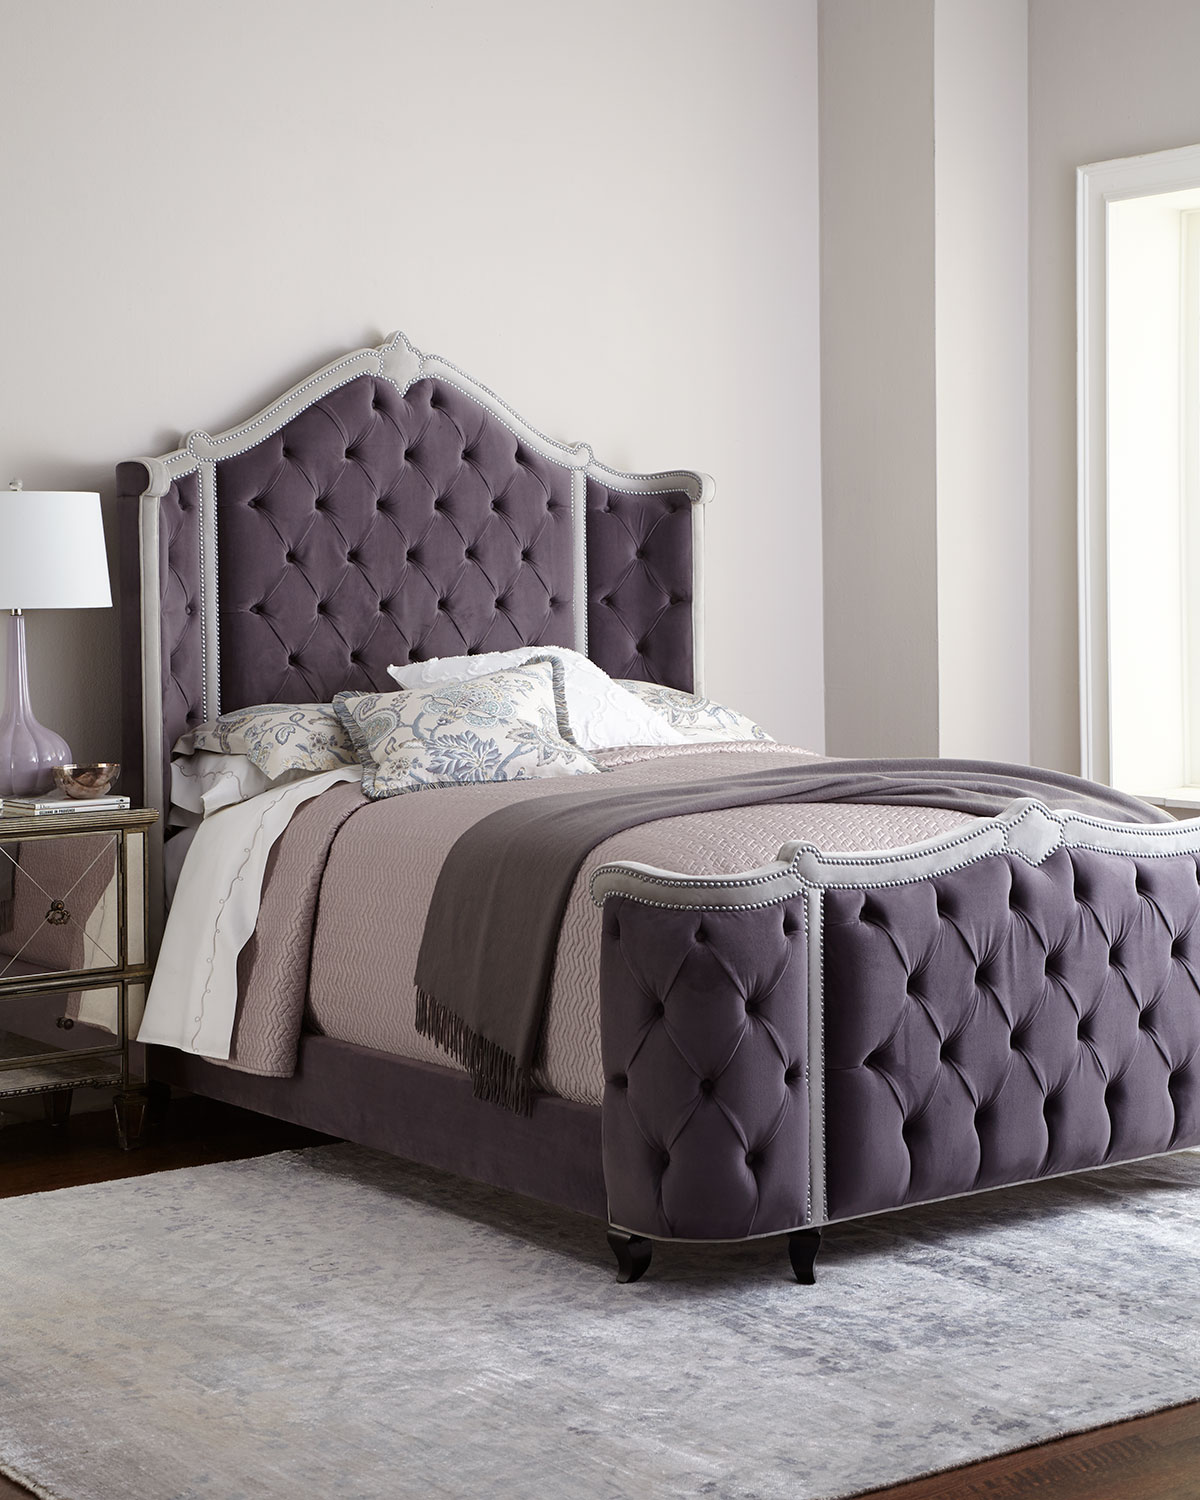 am shot spade screen room kate dress collection at inspires the to us gives bedroom decorate why inspiration knows home